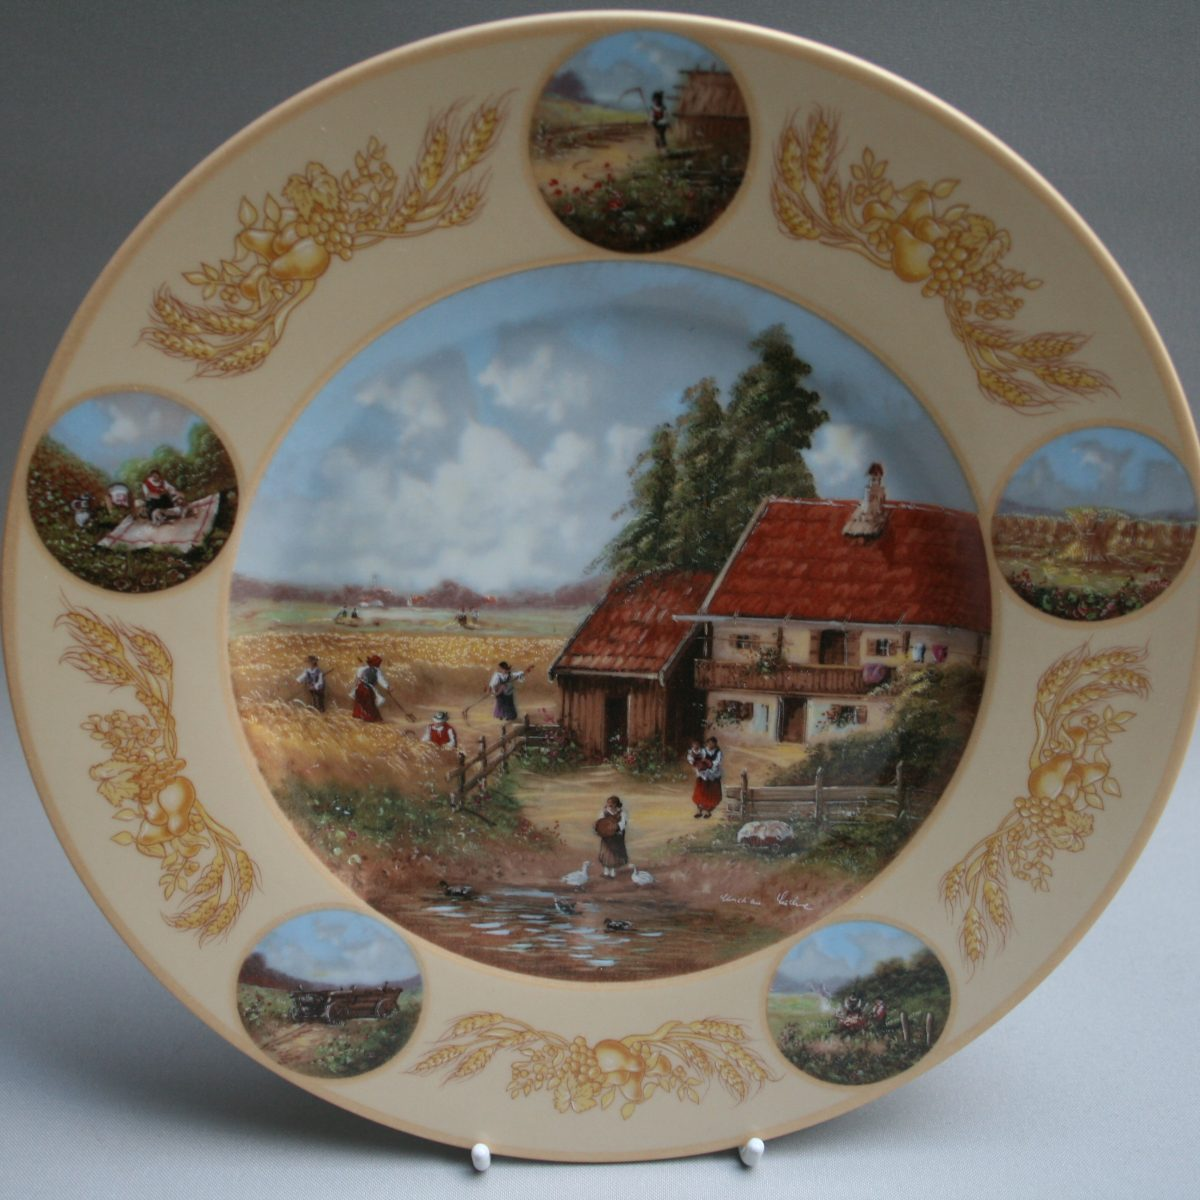 Four decorated plates by Christian Luckel/williamsantiques